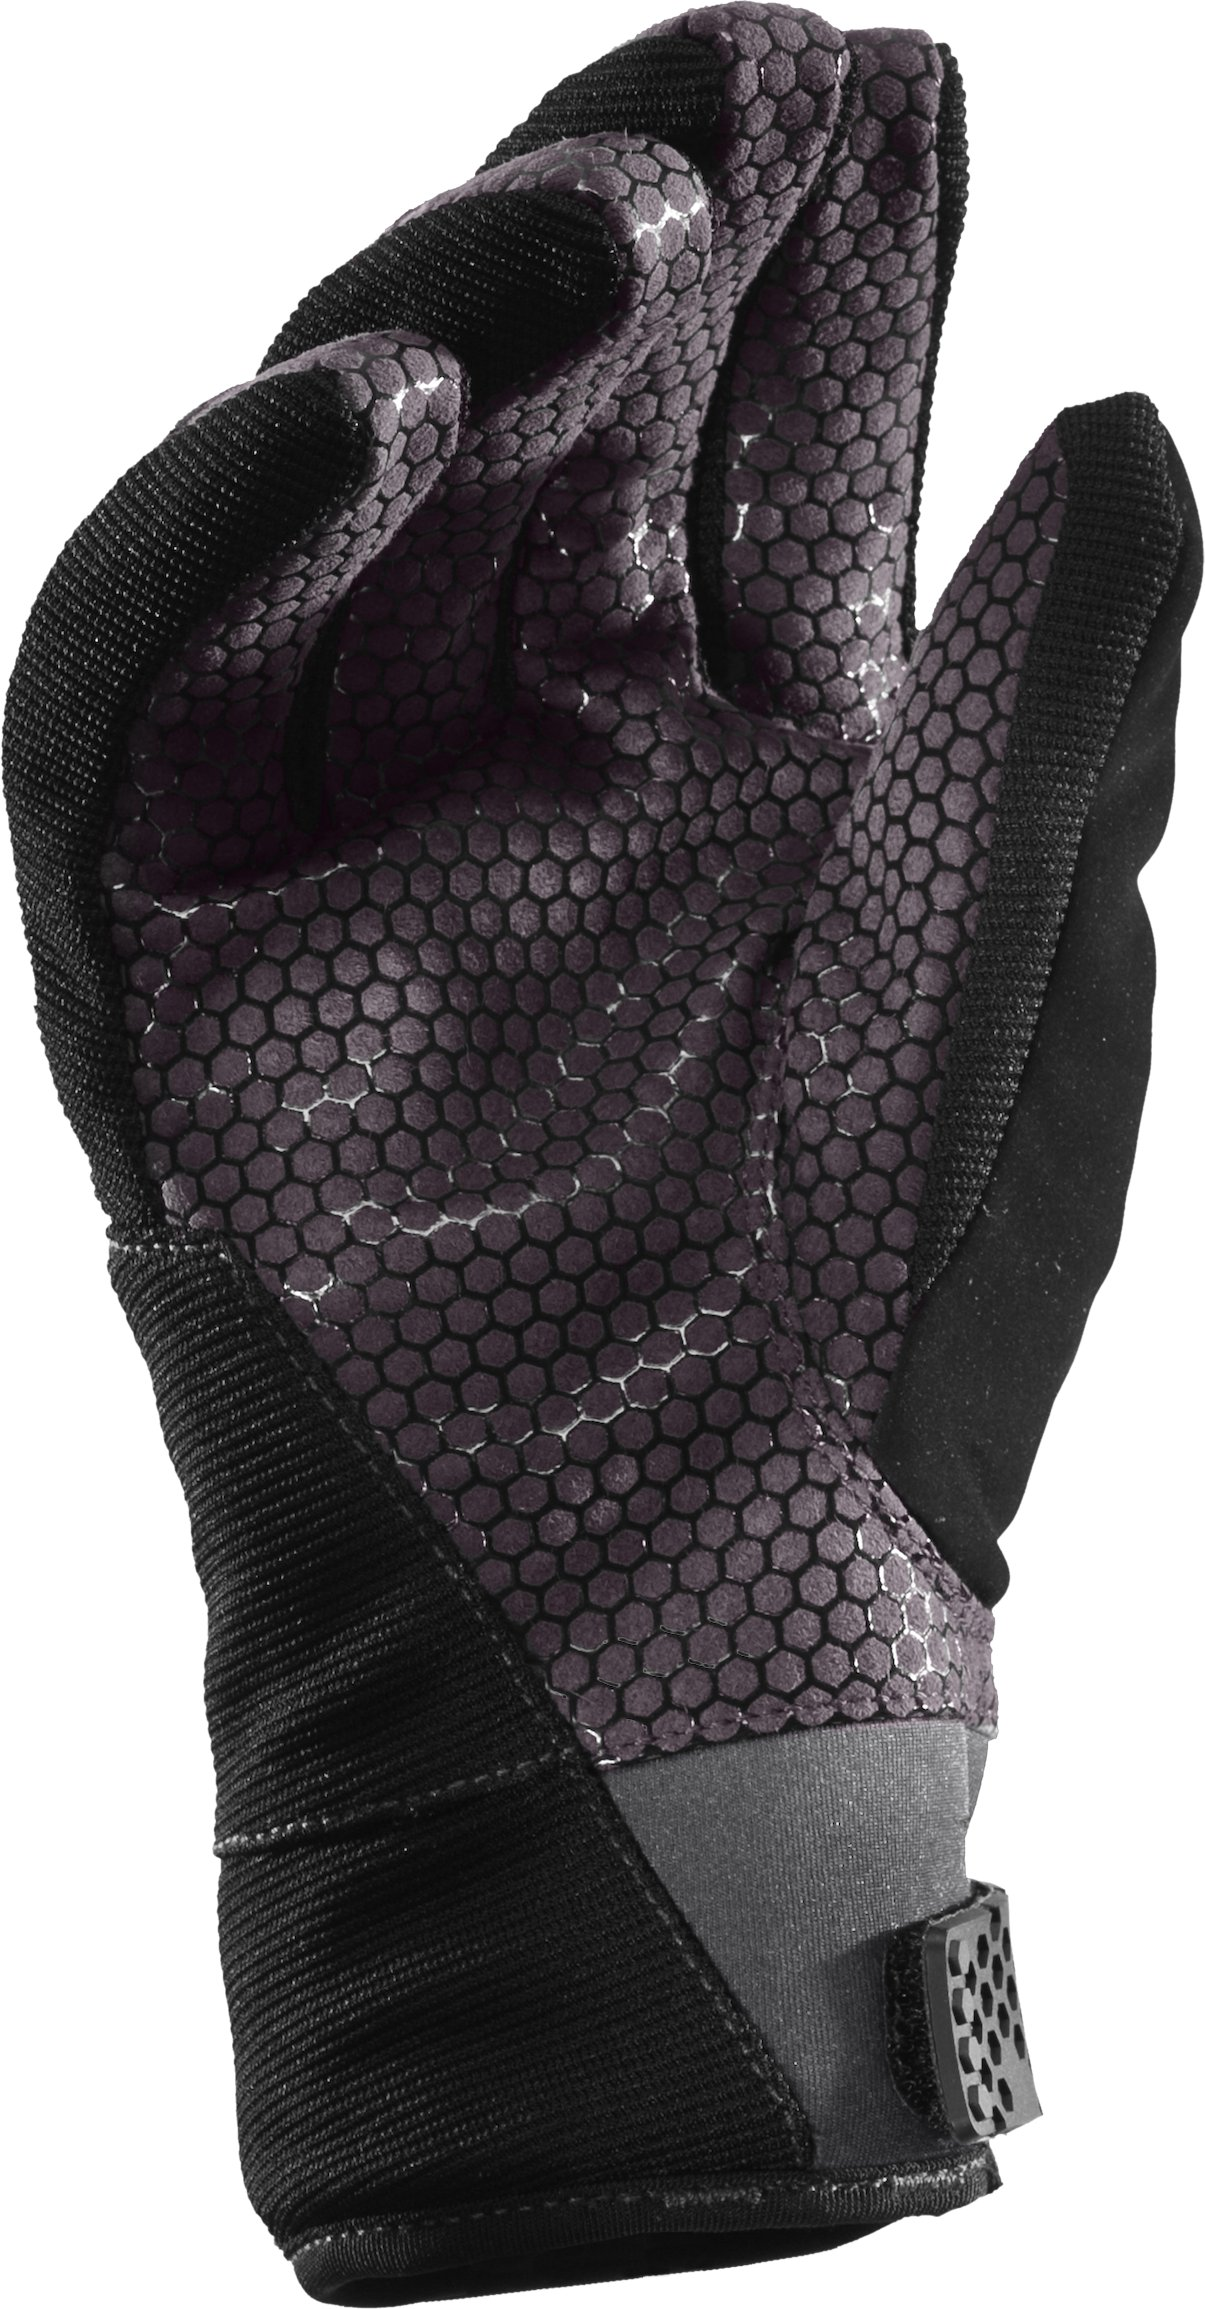 Men's Jonesy II Winter Sports Gloves, Graphite